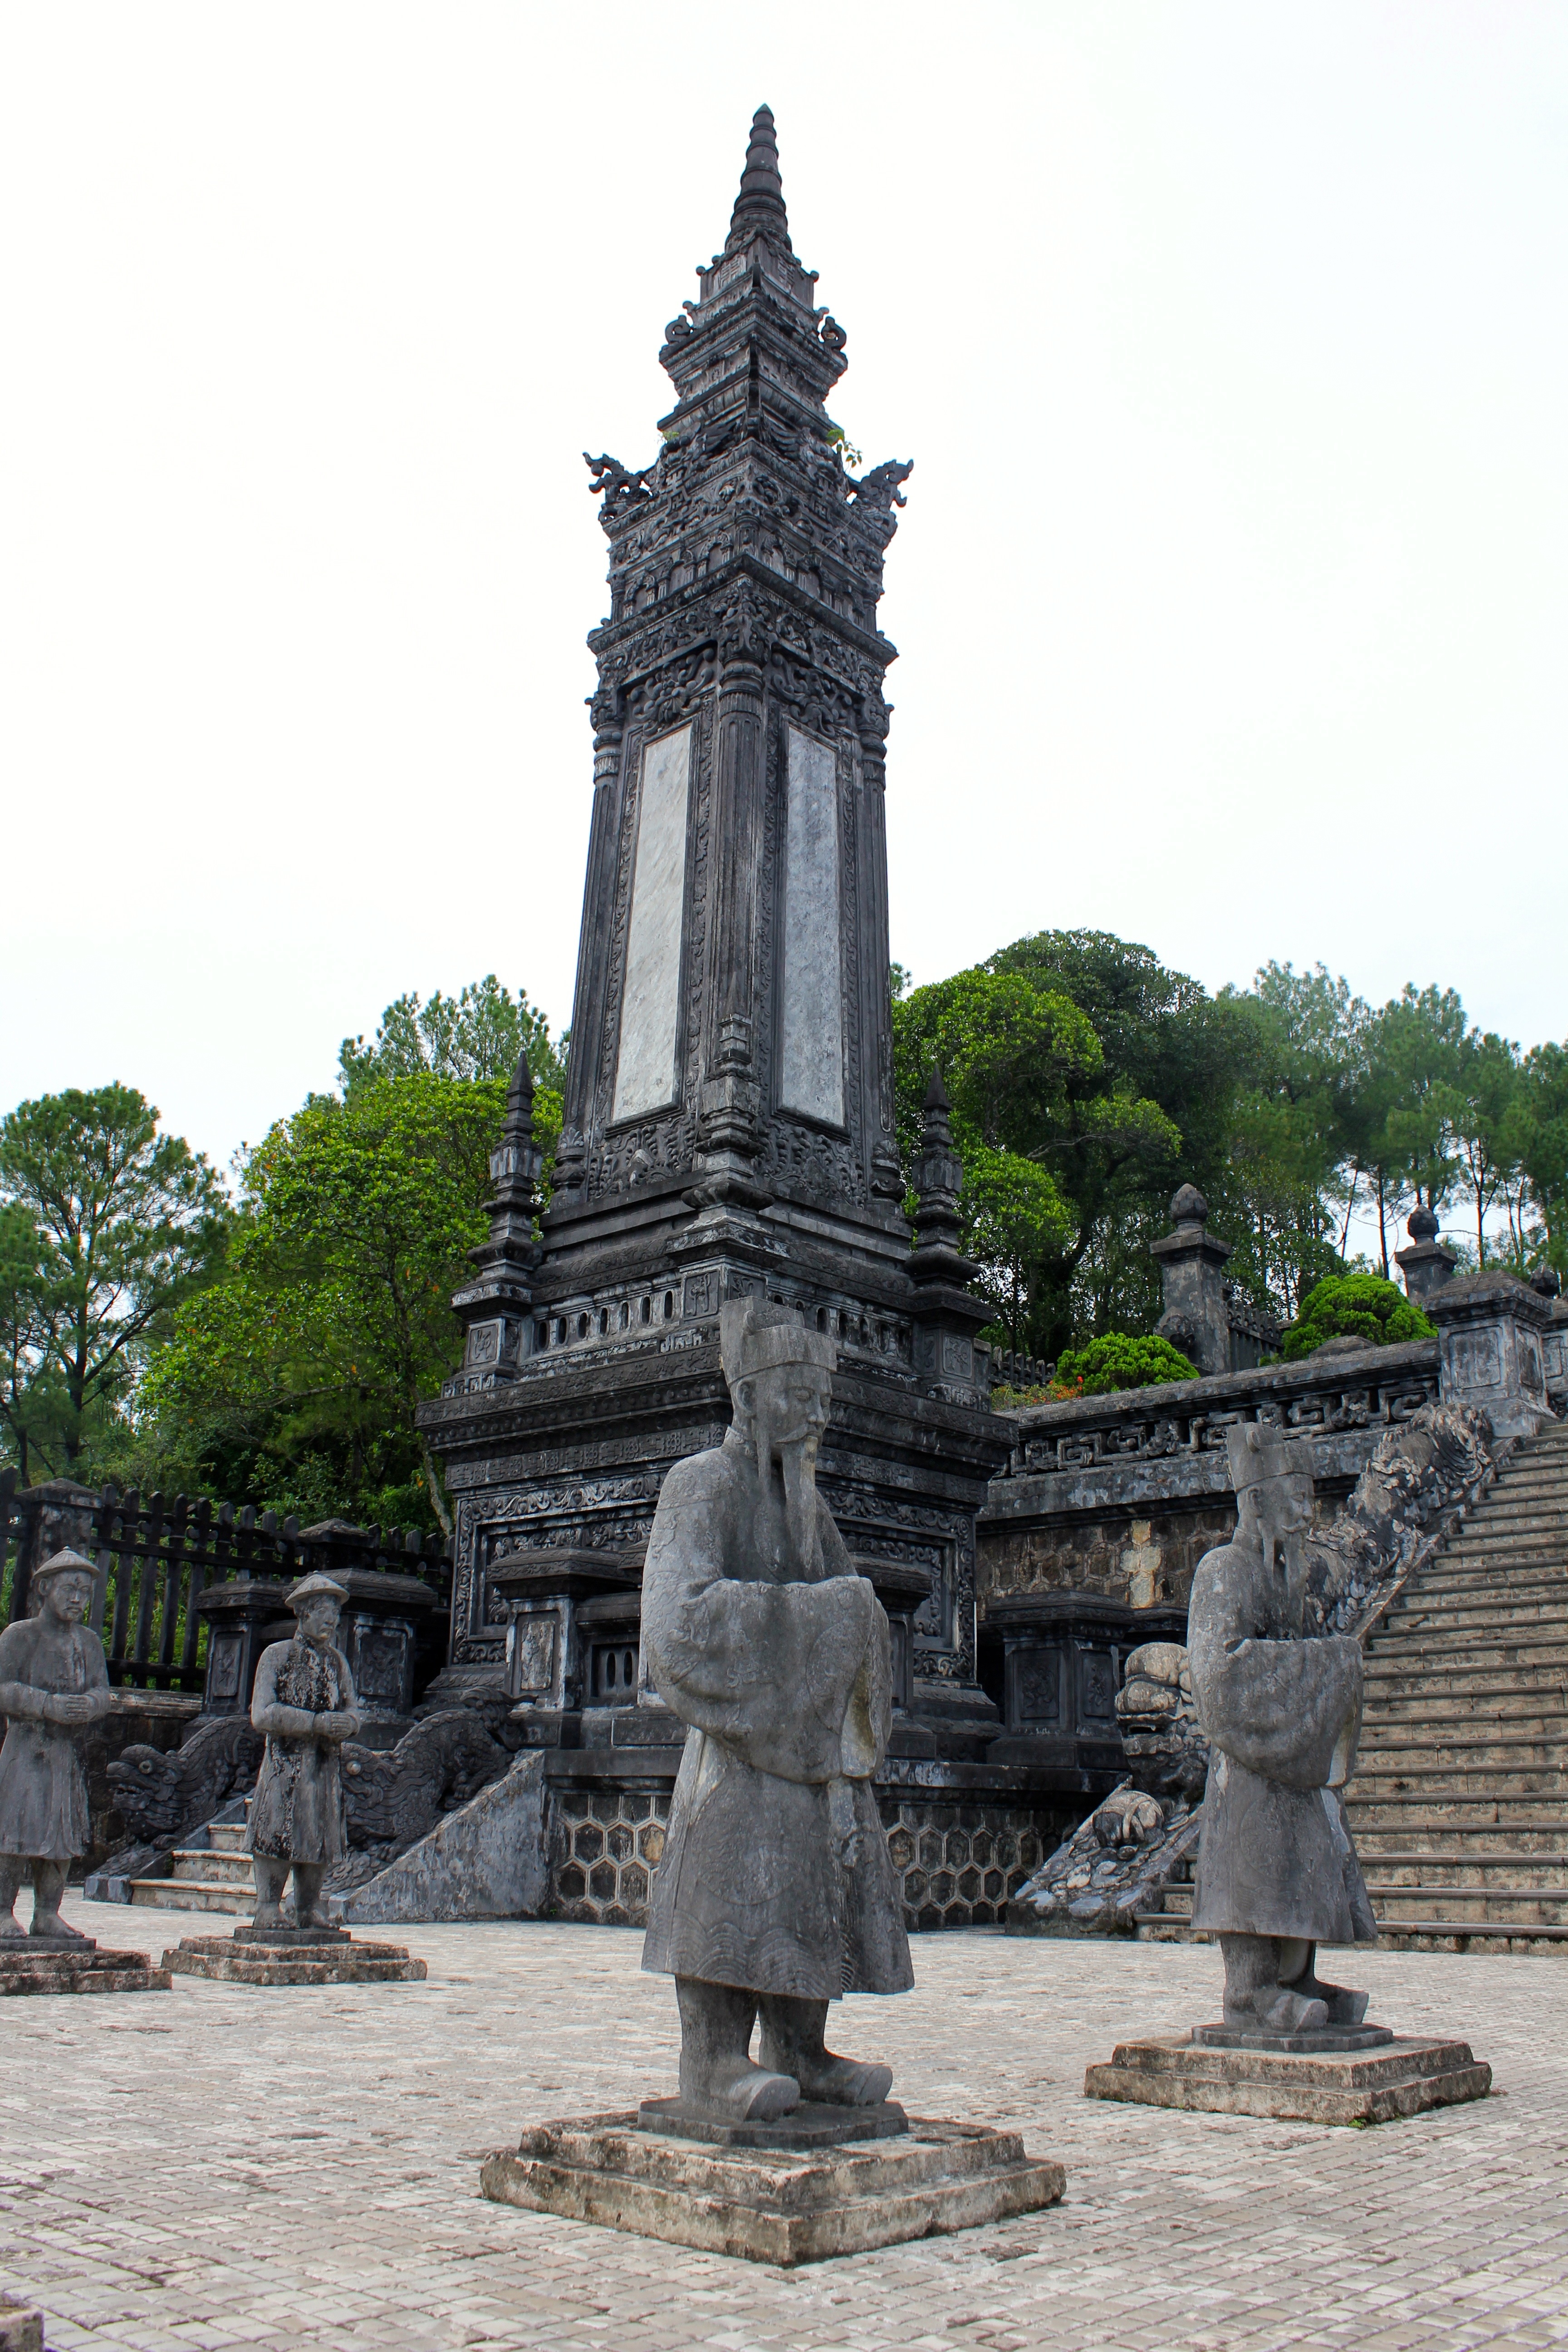 The hauntingly beautiful tomb of Emperor Khai Dinh amongst the hills of the former imperial capital city of Hue © Nisha D'Souza